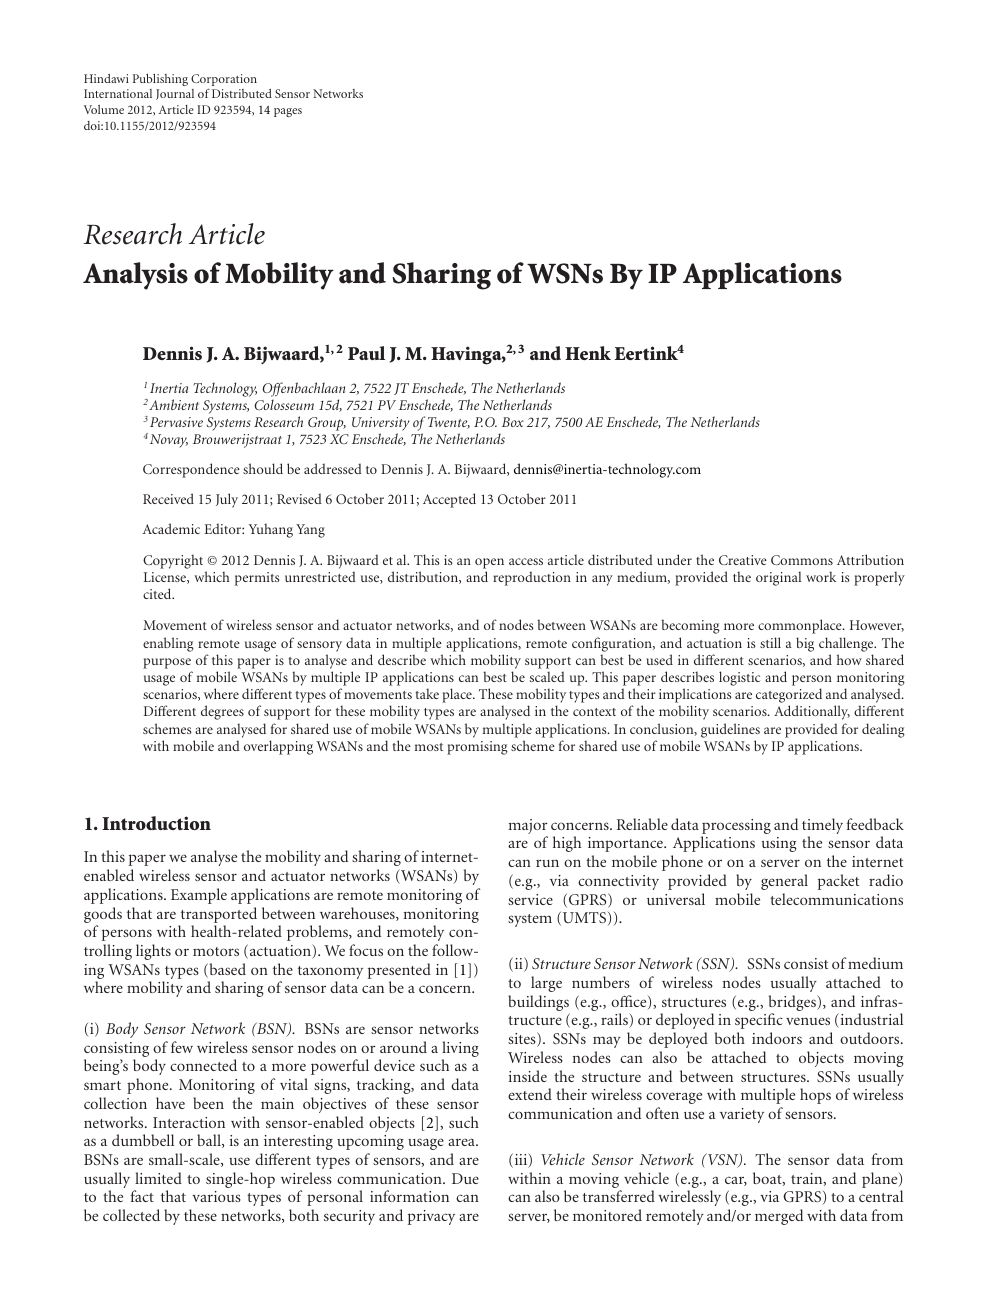 Analysis of Mobility and Sharing of WSNs By IP Applications – topic